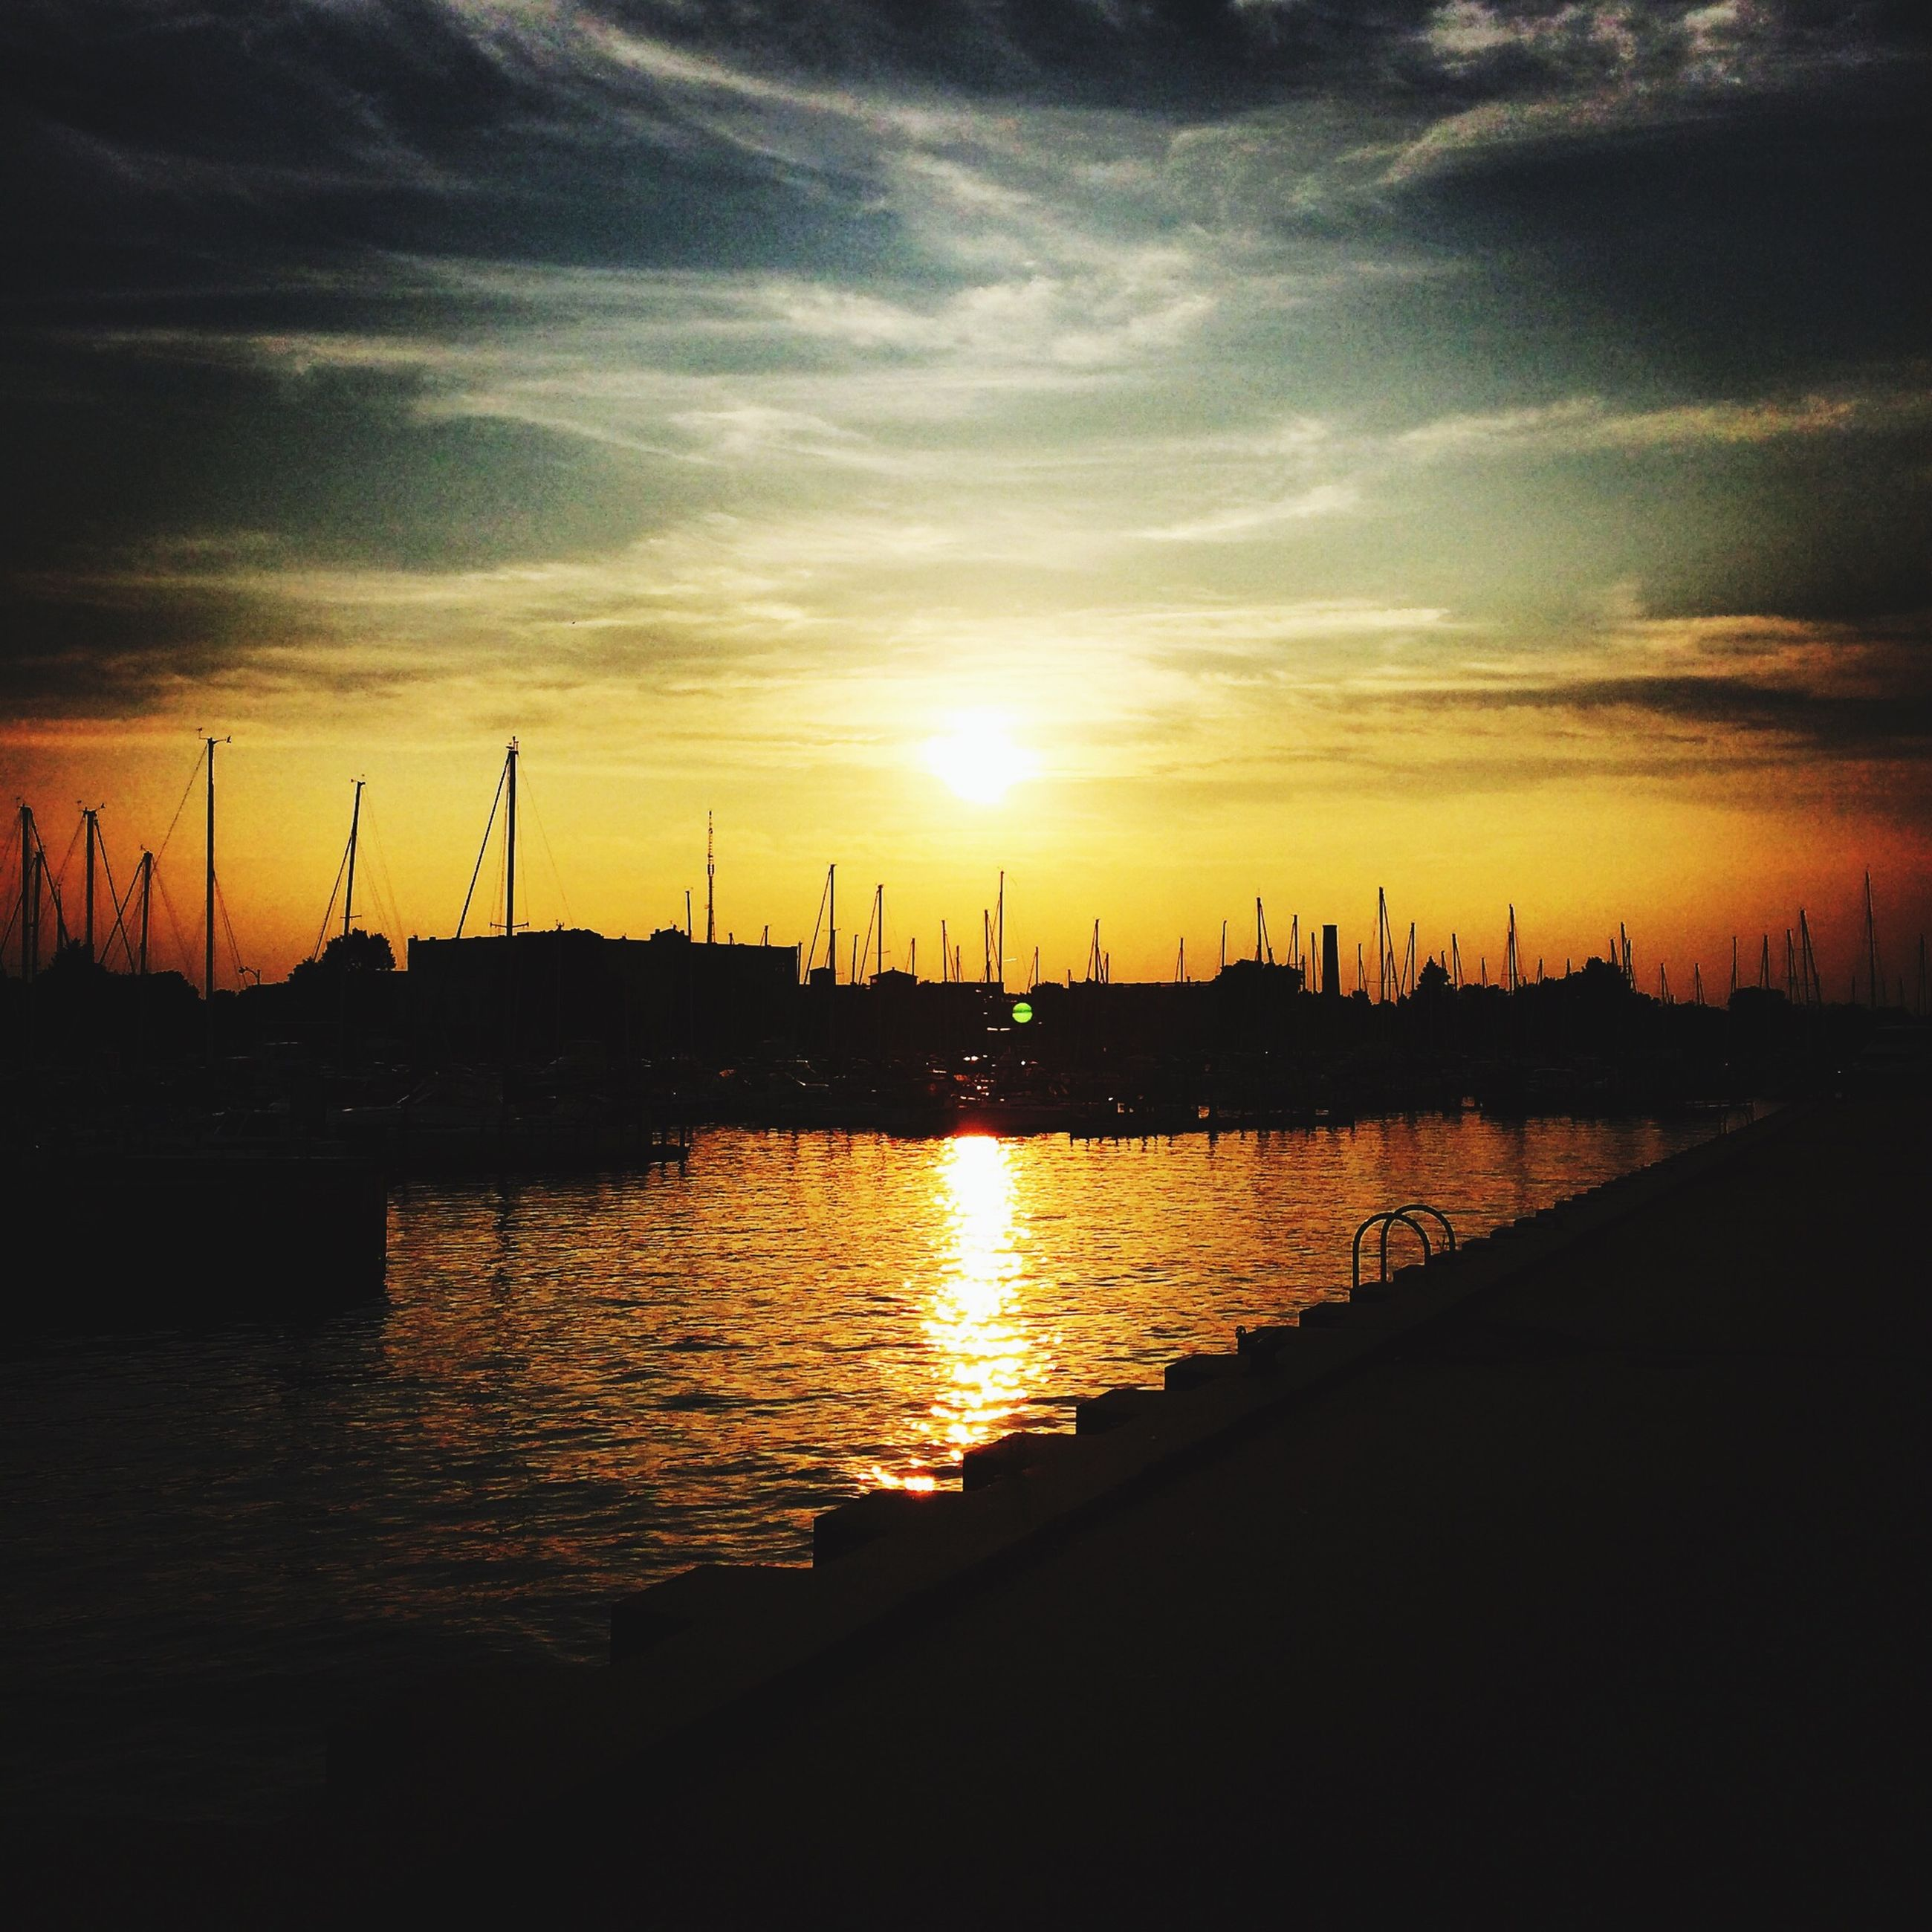 sunset, water, silhouette, sun, sky, reflection, scenics, river, beauty in nature, orange color, sunlight, harbor, tranquil scene, cloud - sky, nature, waterfront, sea, built structure, tranquility, cloud